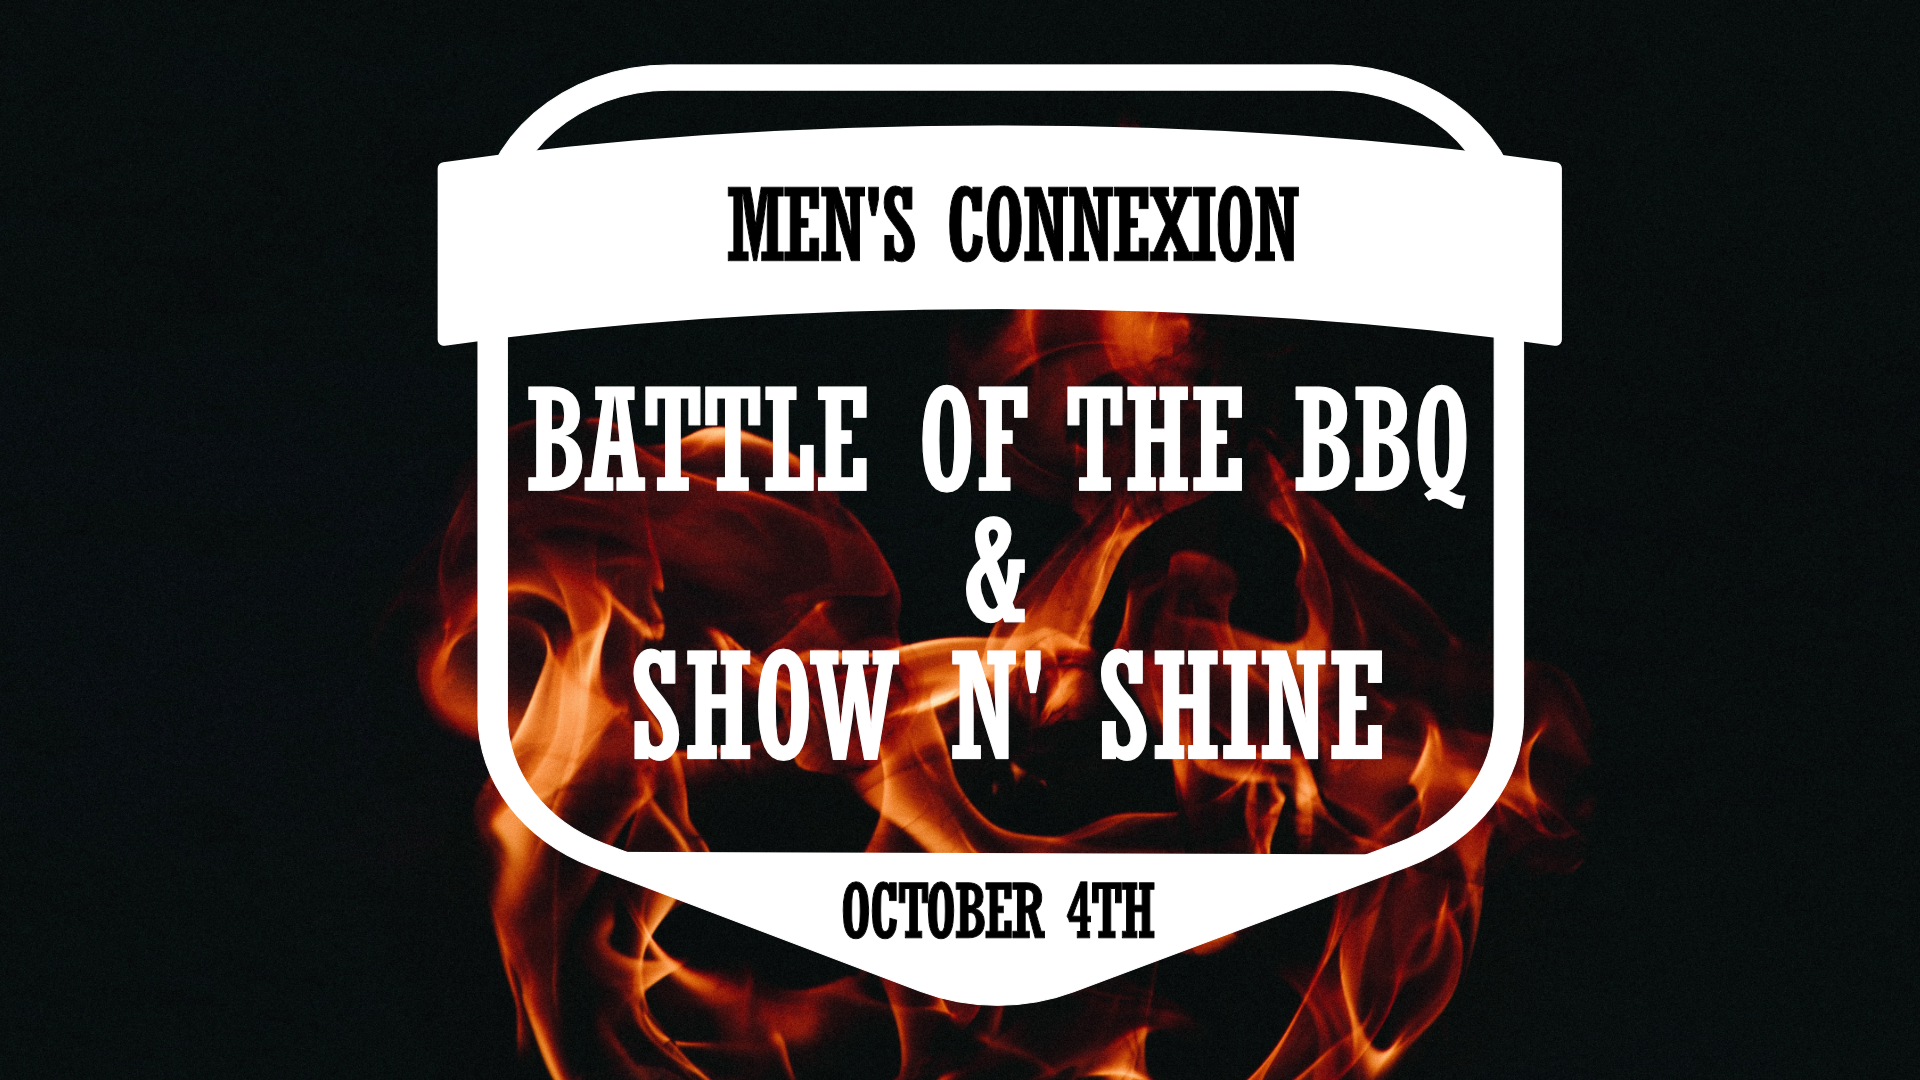 Battle of the BBq & Show n' Shine PPT.png